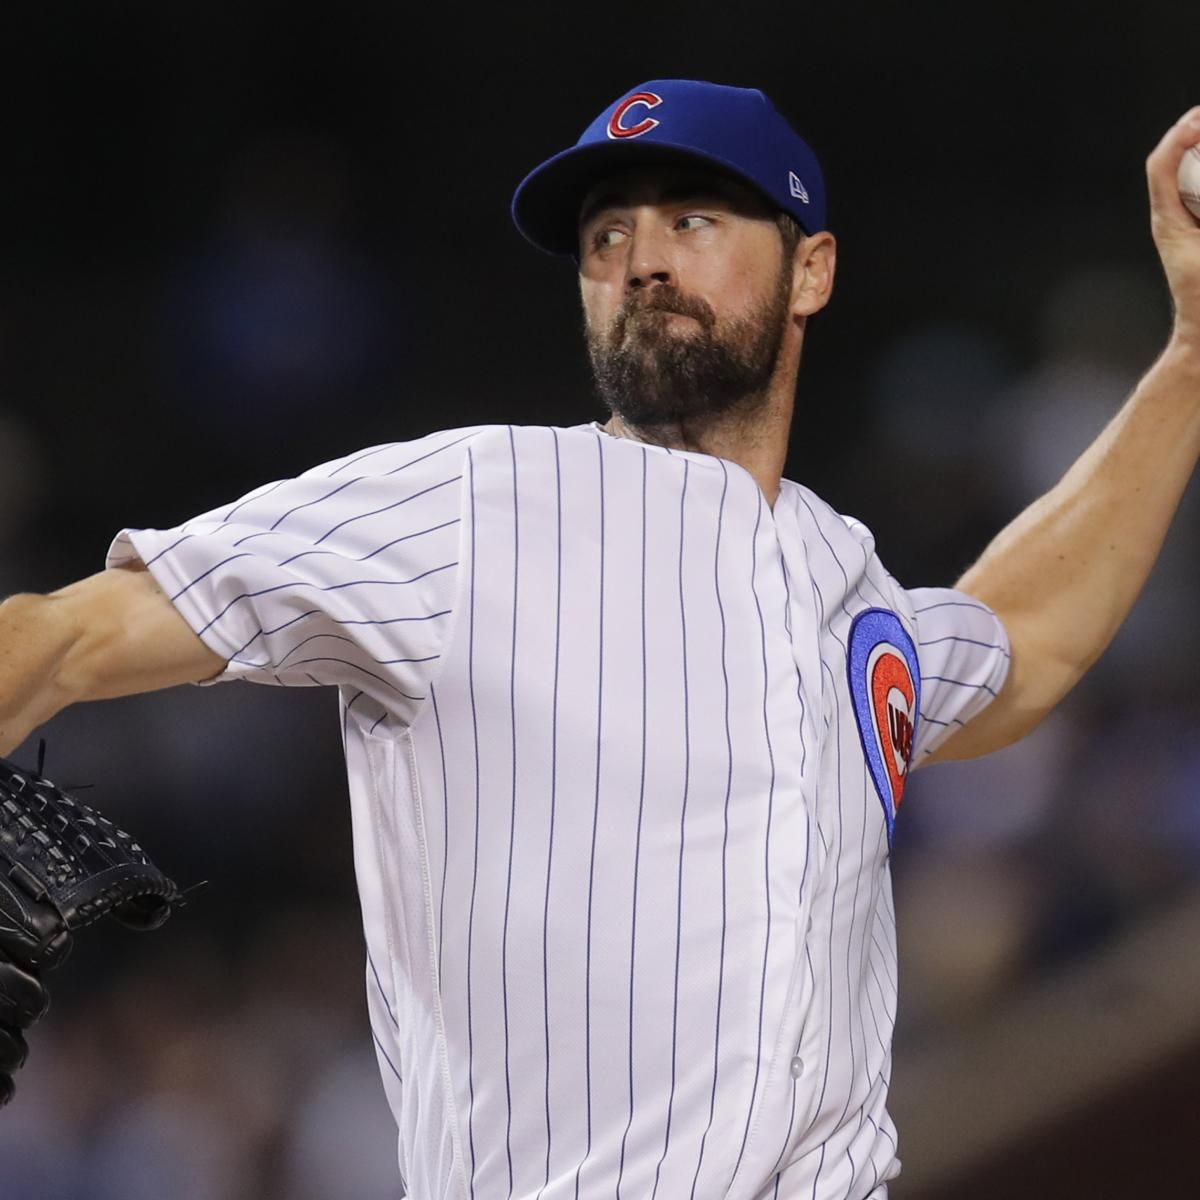 Mlb Rumors Cole Hamels 20m Contract Option To Be Picked Up By Cubs Cole Hamels Cubs Mlb